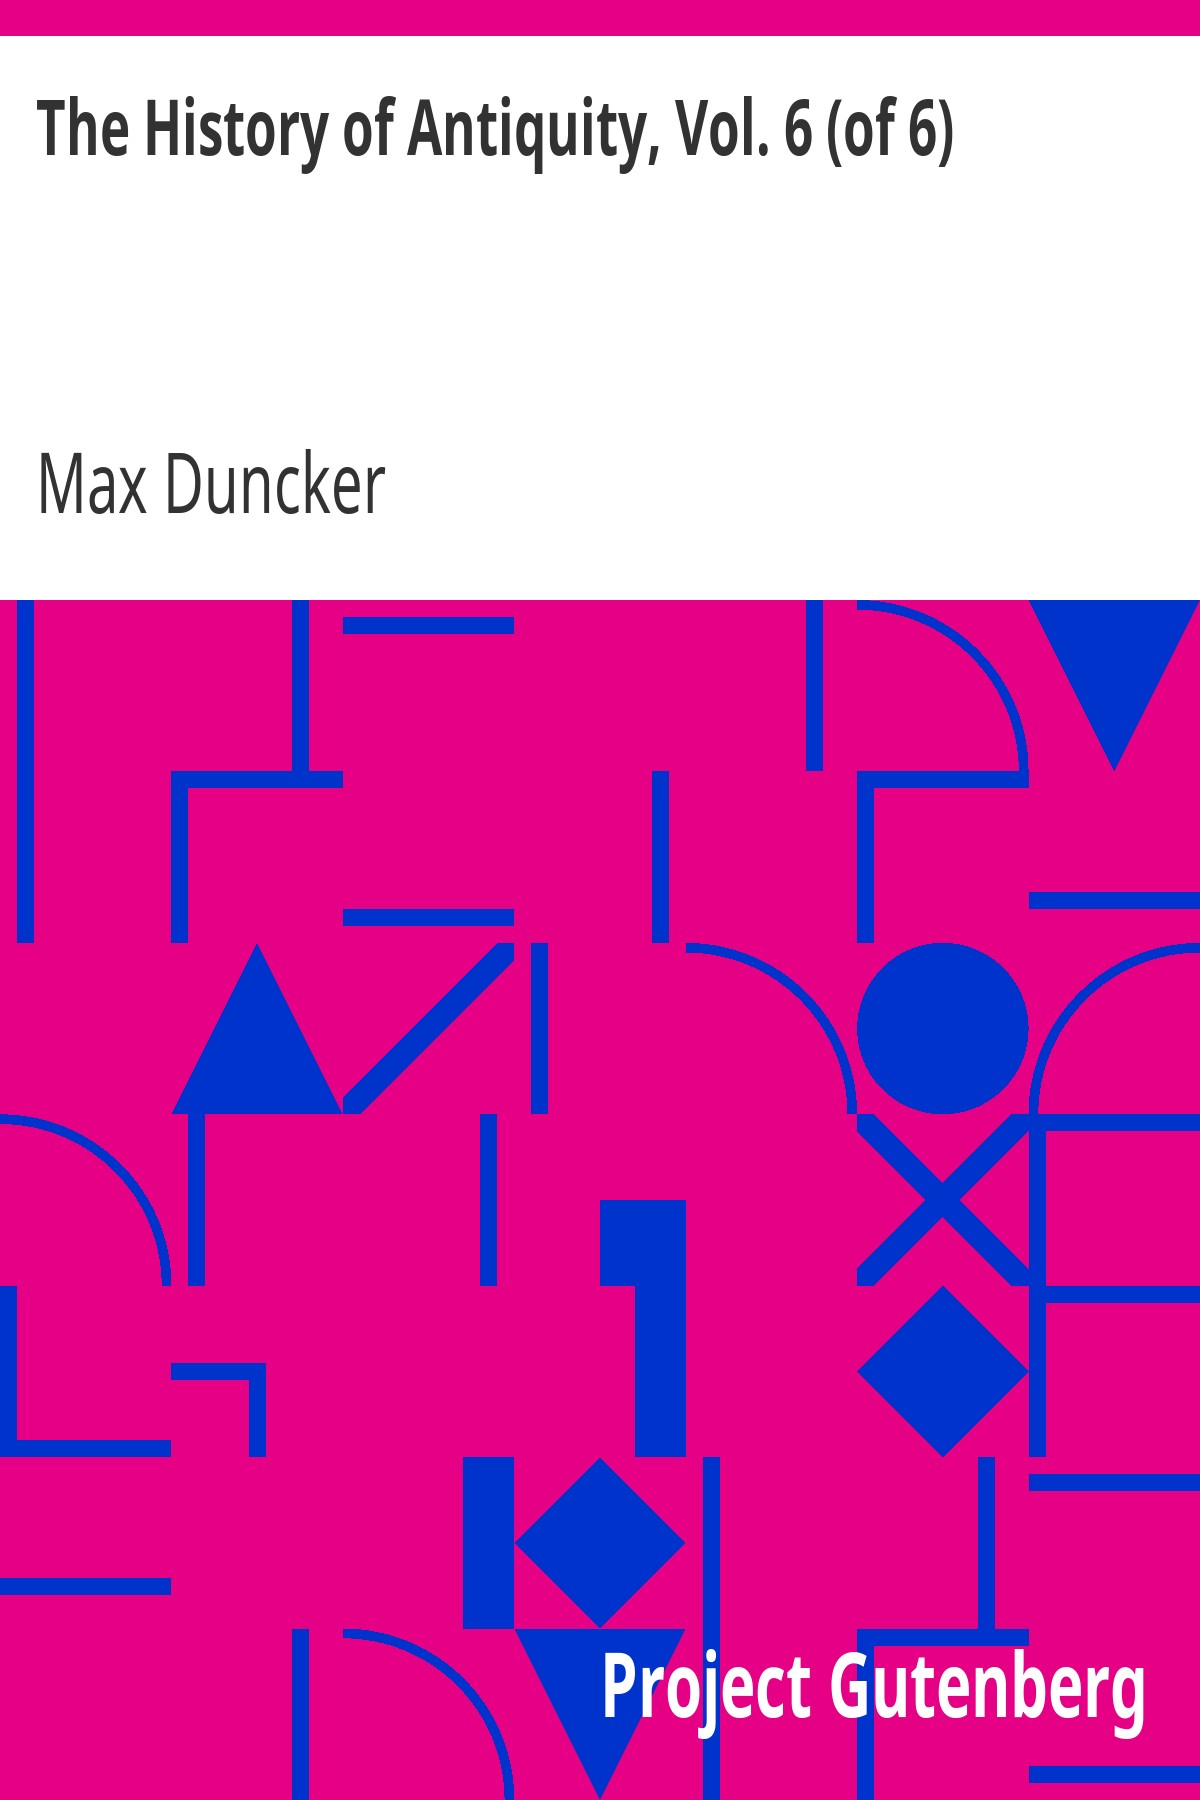 Max Duncker The History of Antiquity, Vol. 6 (of 6)